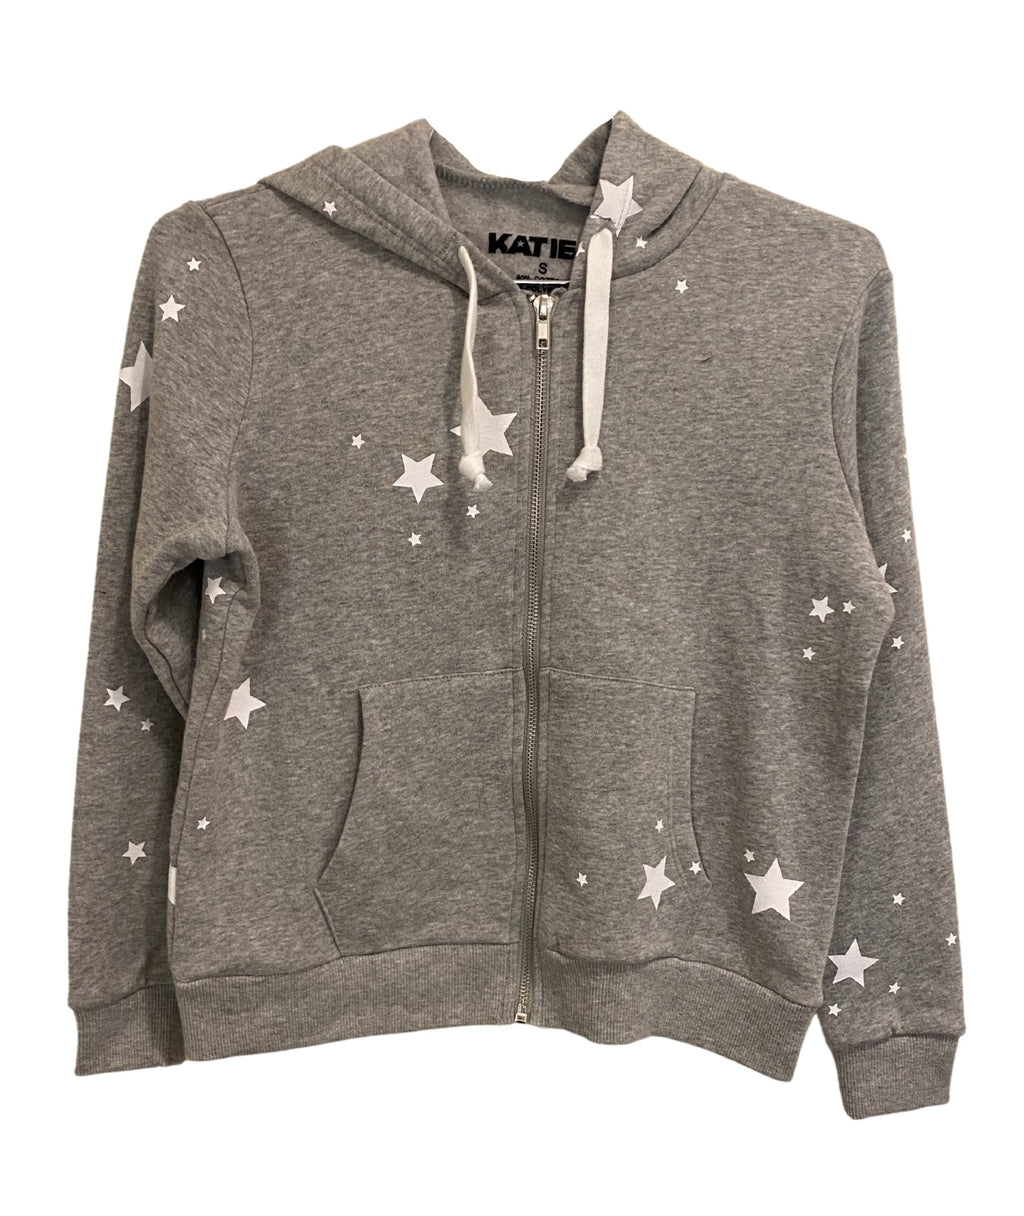 Katie J NYC Girls Faith Grey Star Zip Hoodie